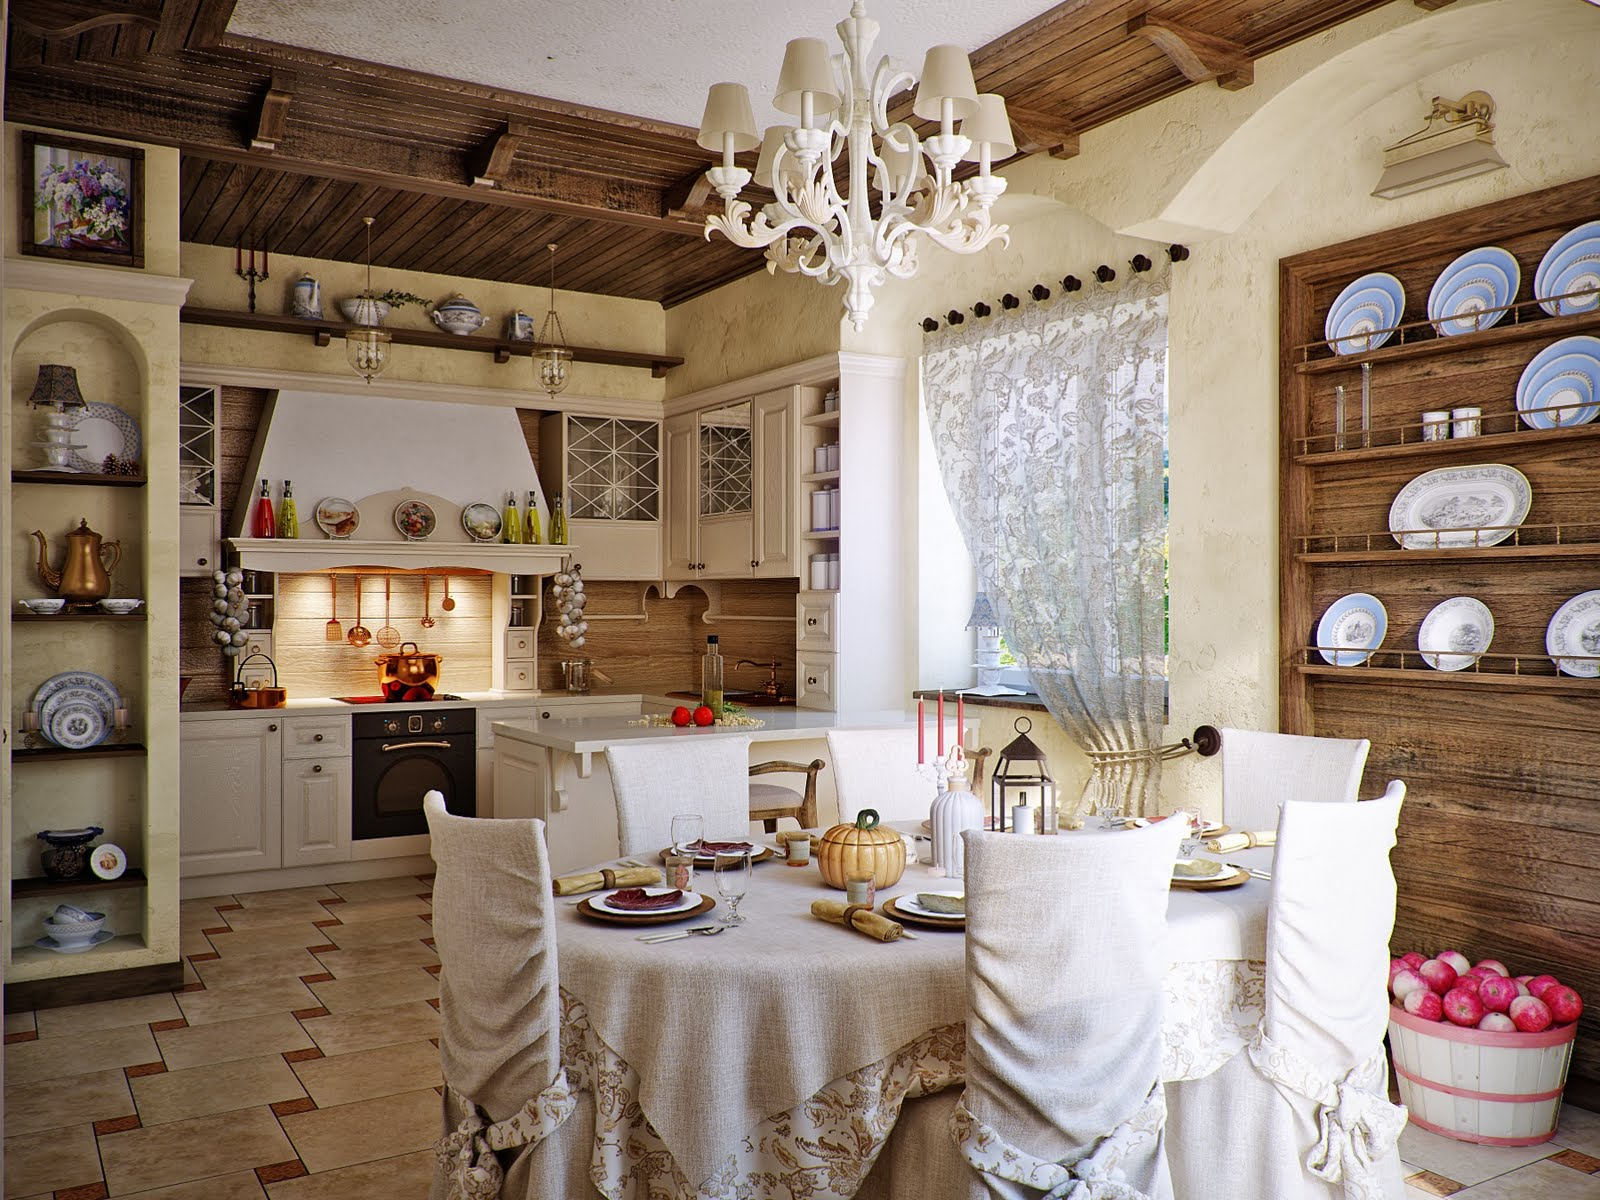 Excellent French Country Kitchen Design Ideas 1600 x 1200 · 326 kB · jpeg